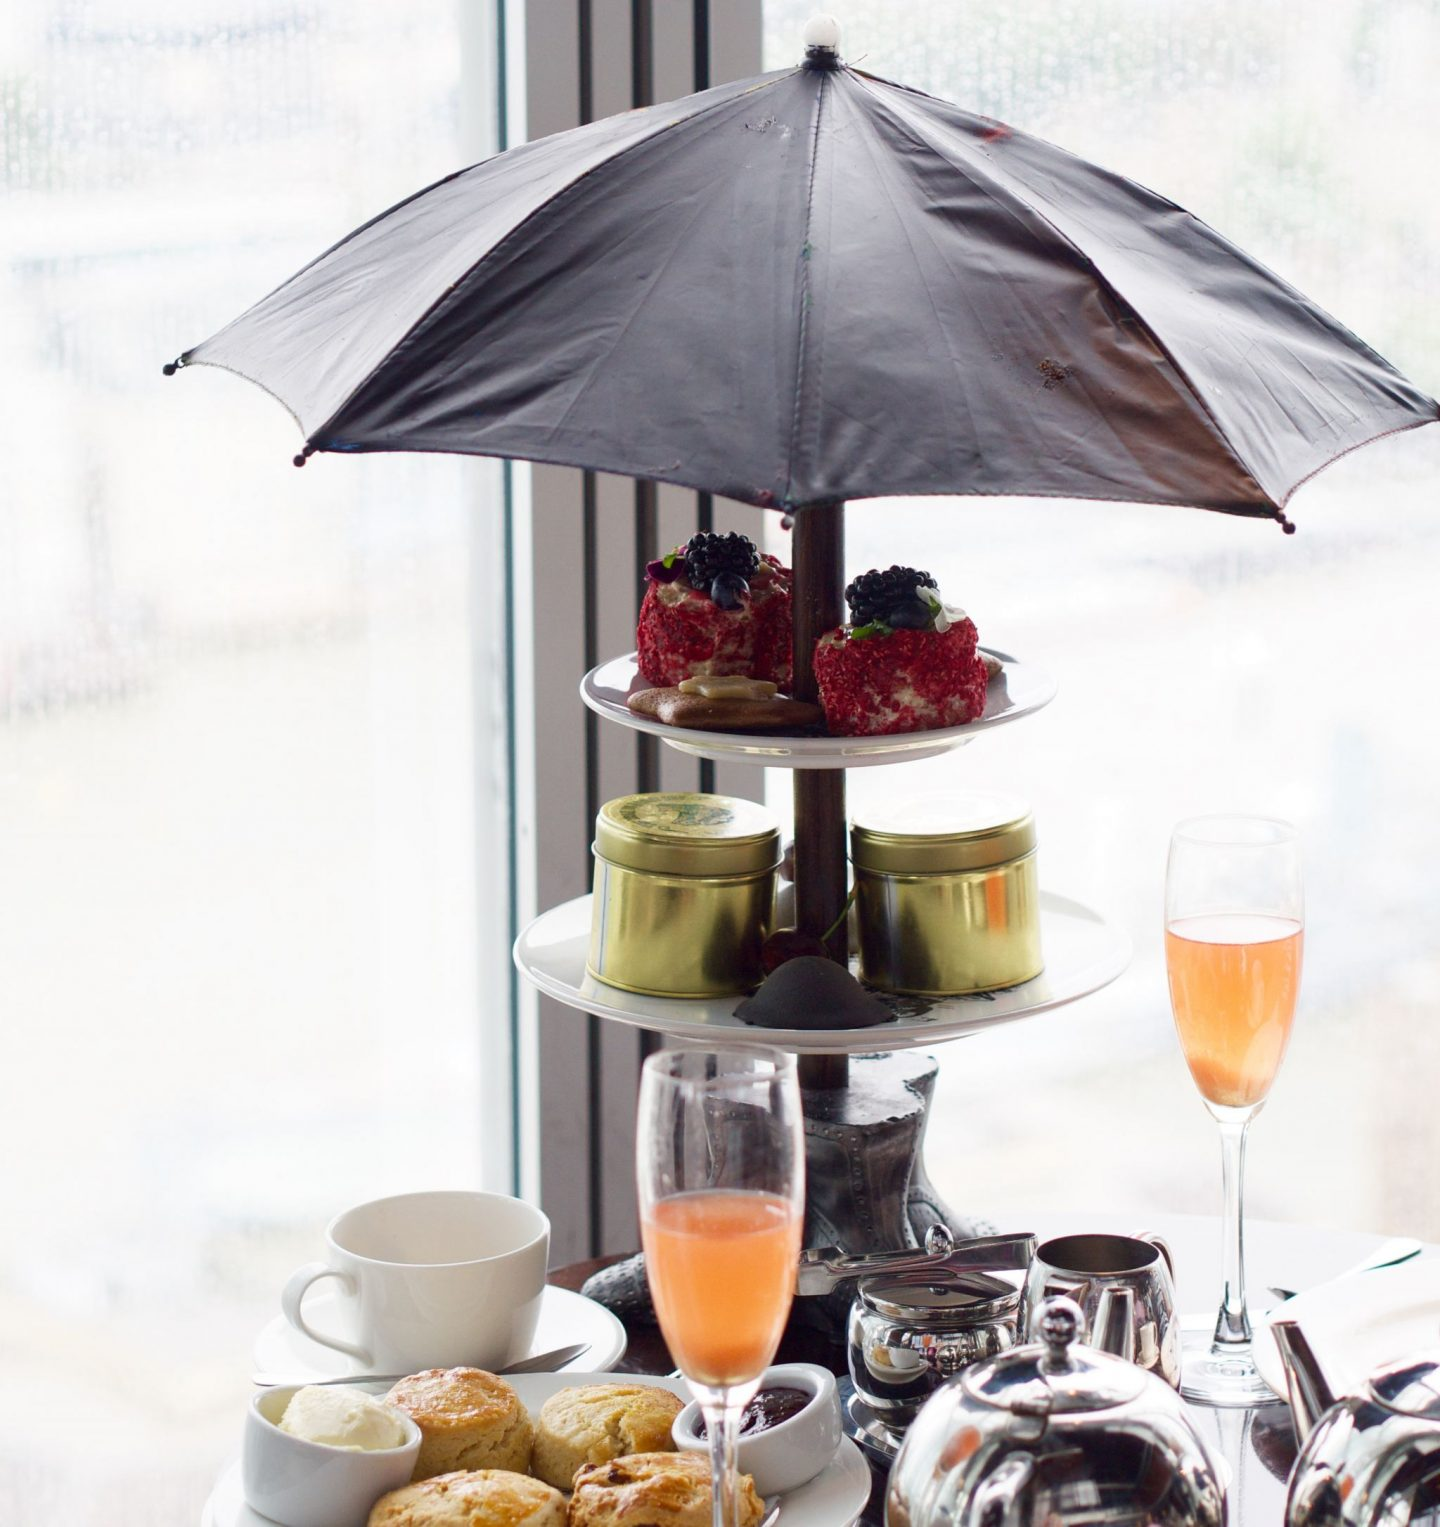 Mary Poppins afternoon tea